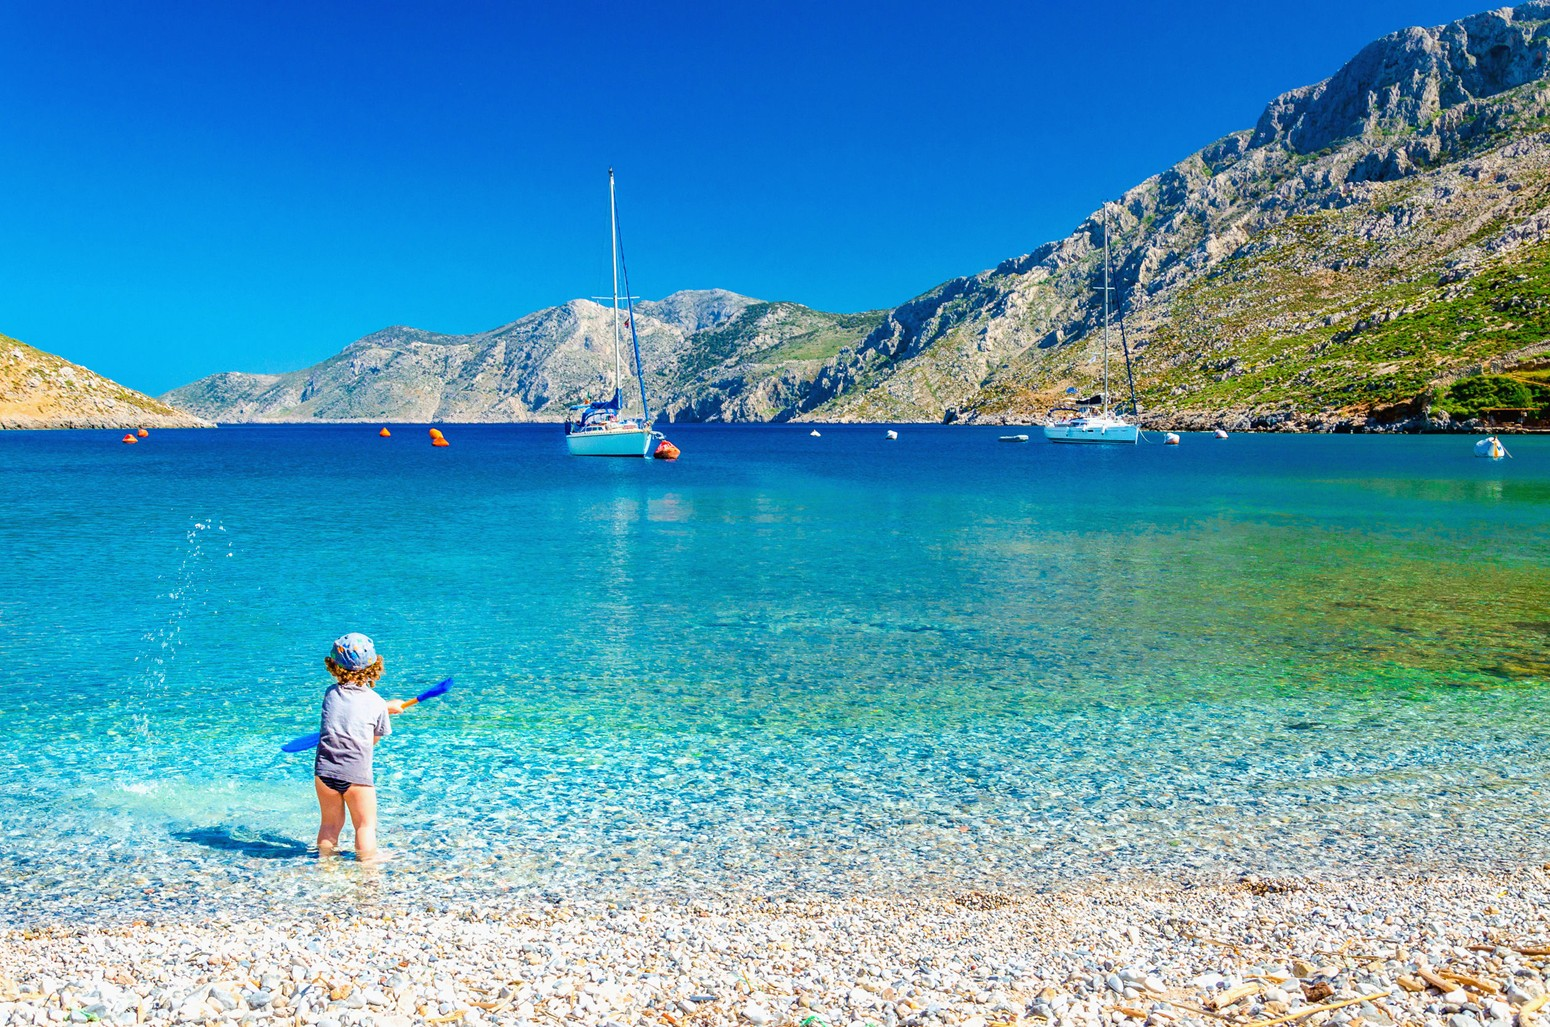 Learn More About Traveling the Greek Islands from Sunset Travel and Cruise Chicago, IL 60614